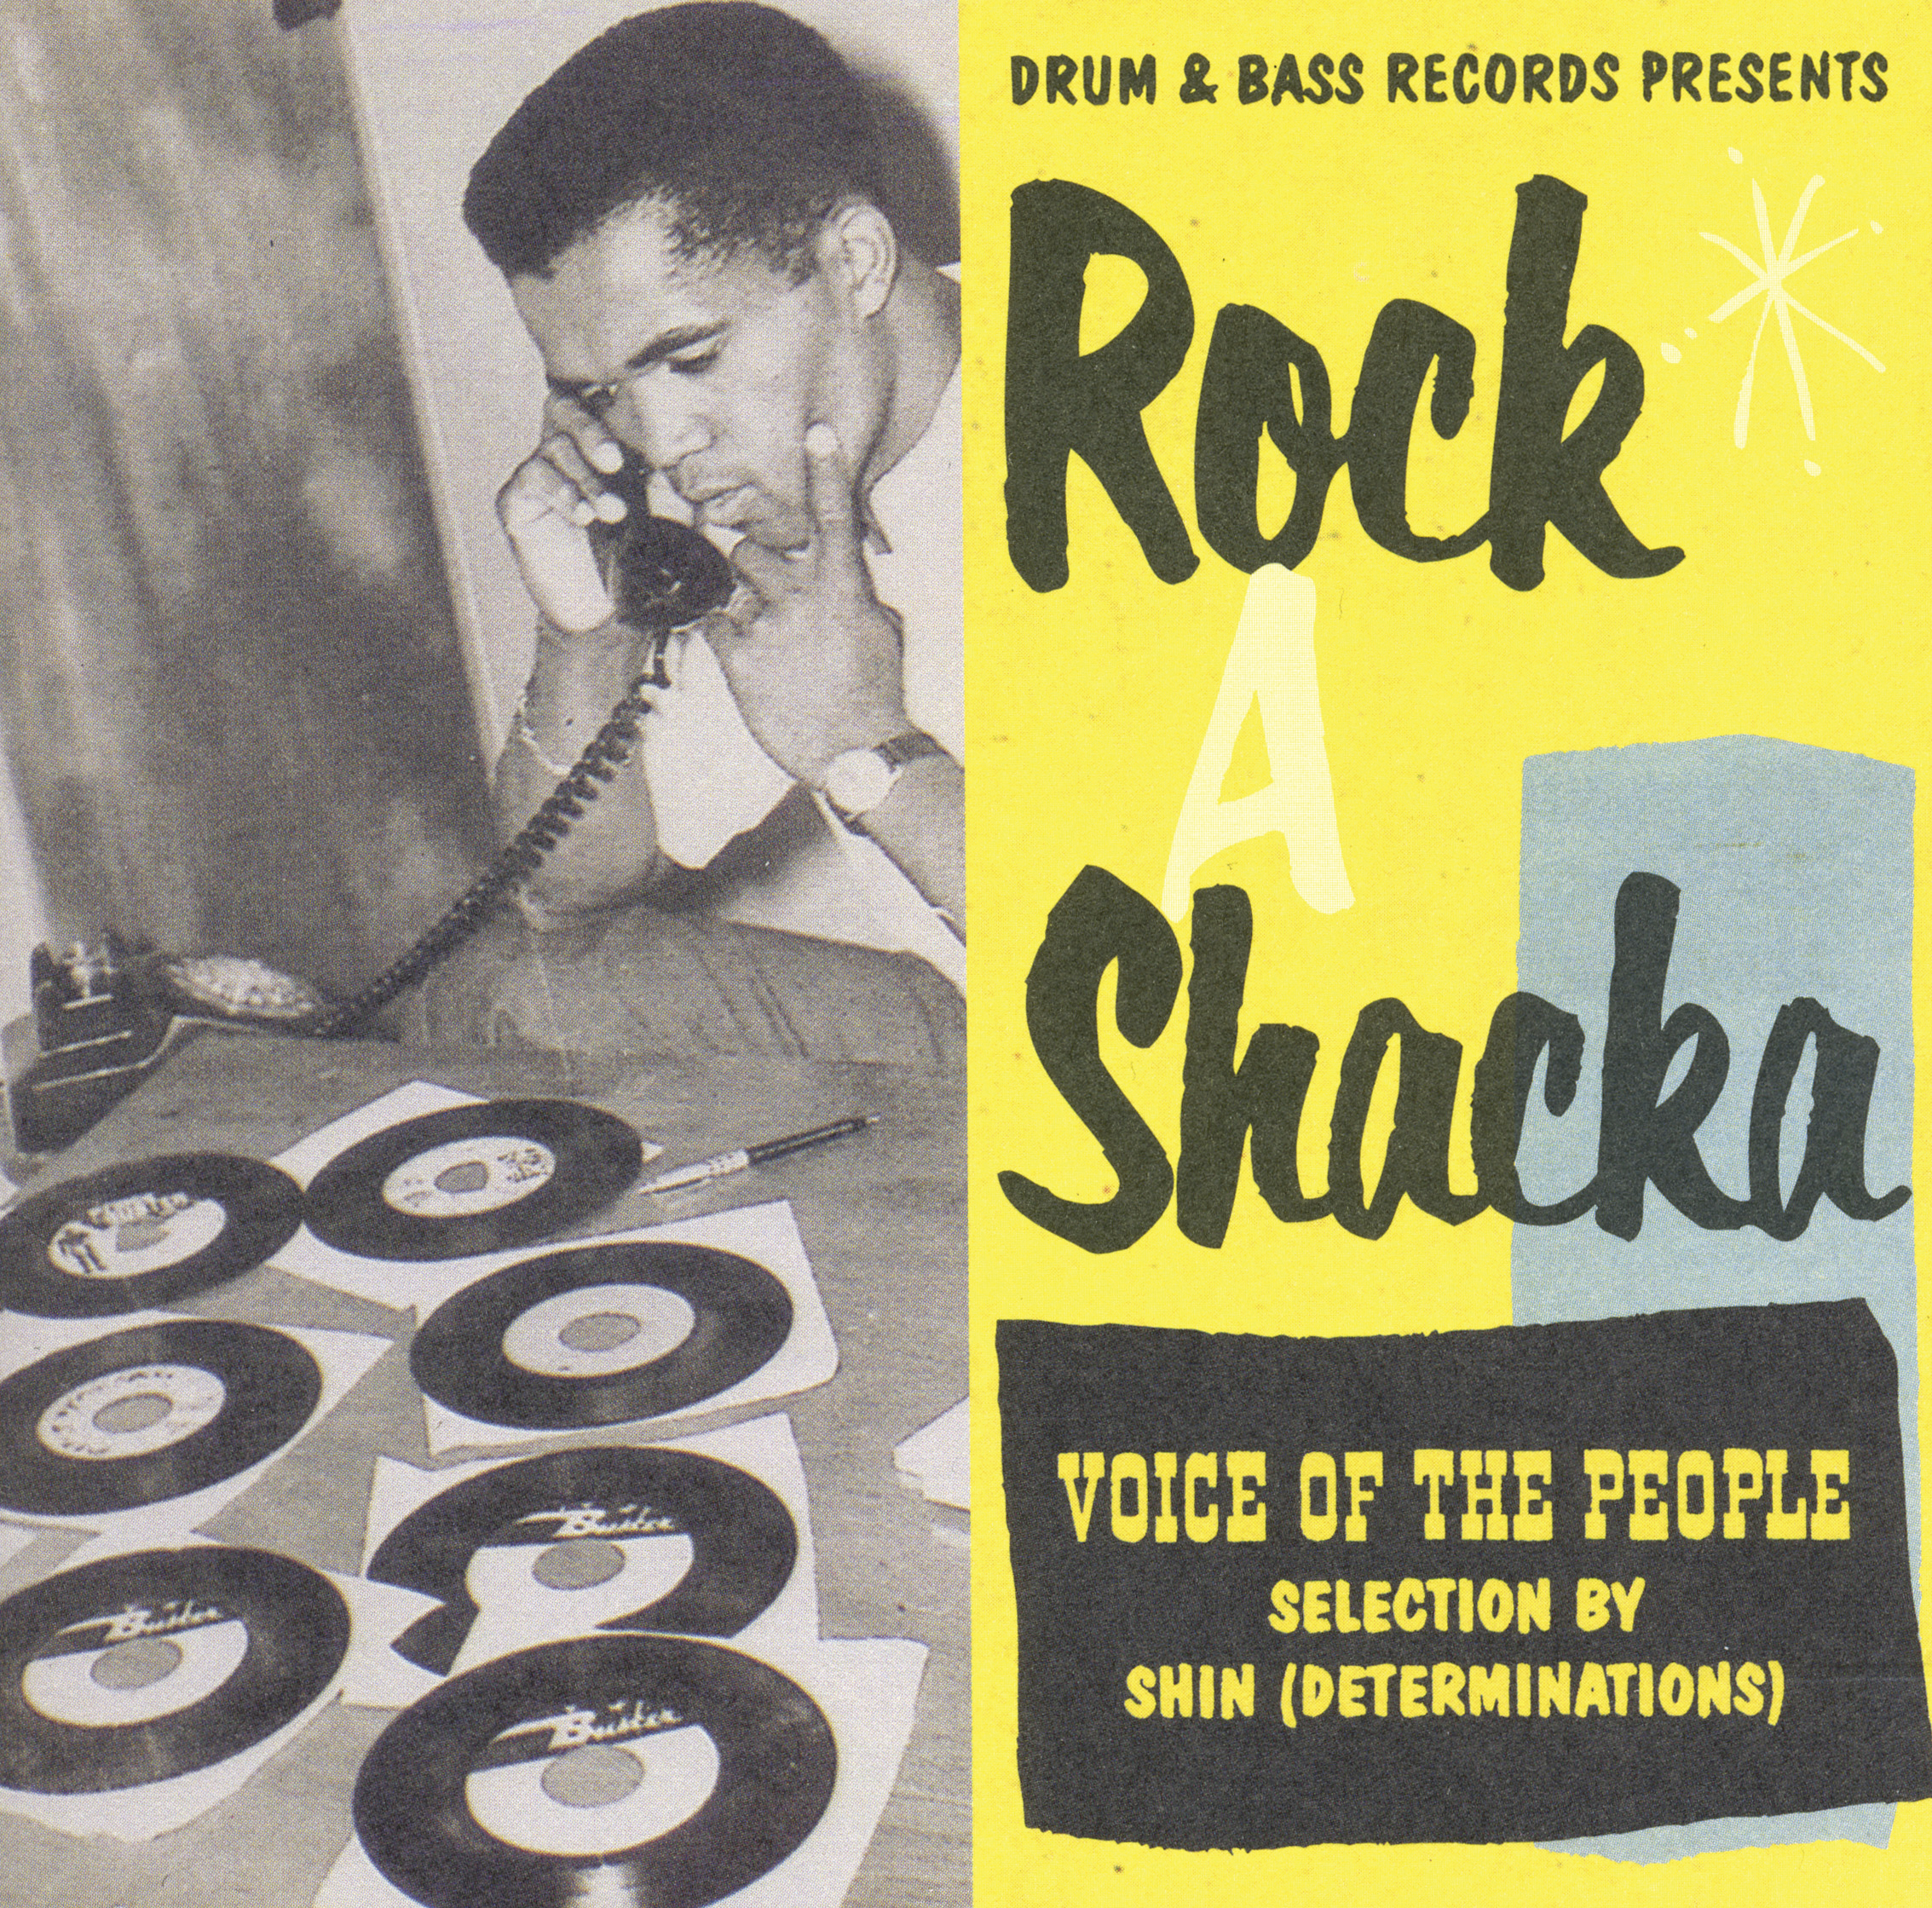 V.A. 「ROCK A SHACKA」